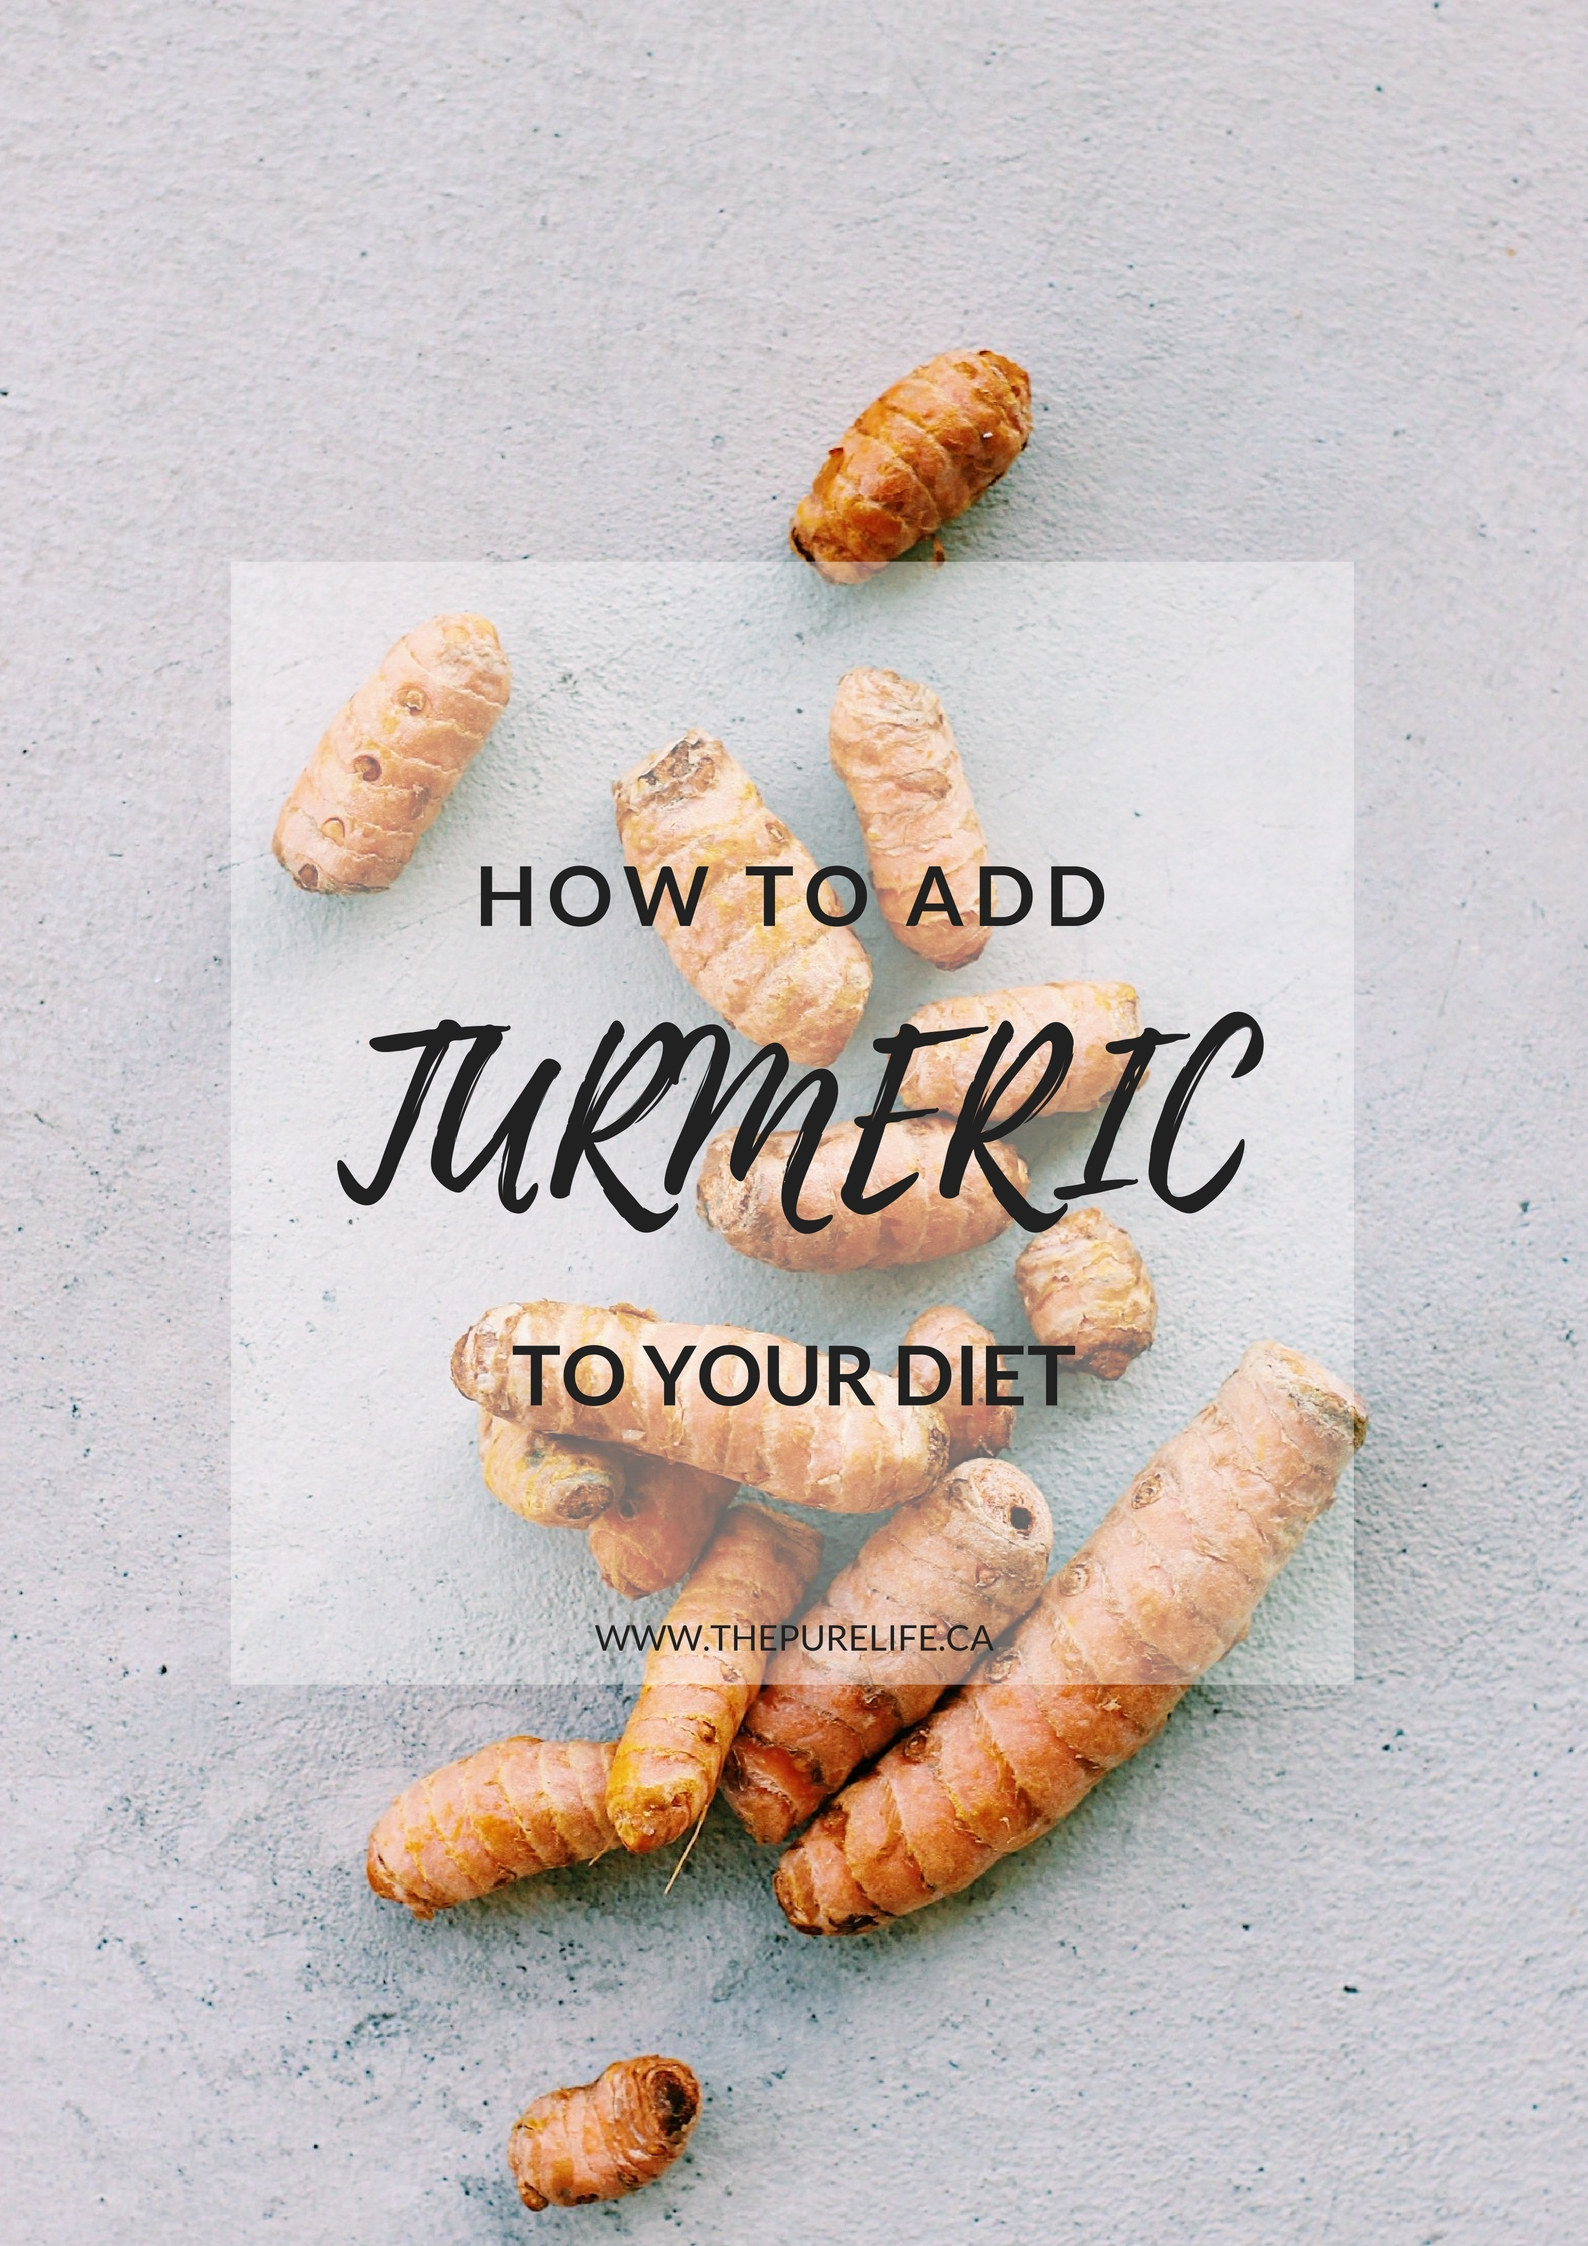 How to Add Turmeric to Your Diet